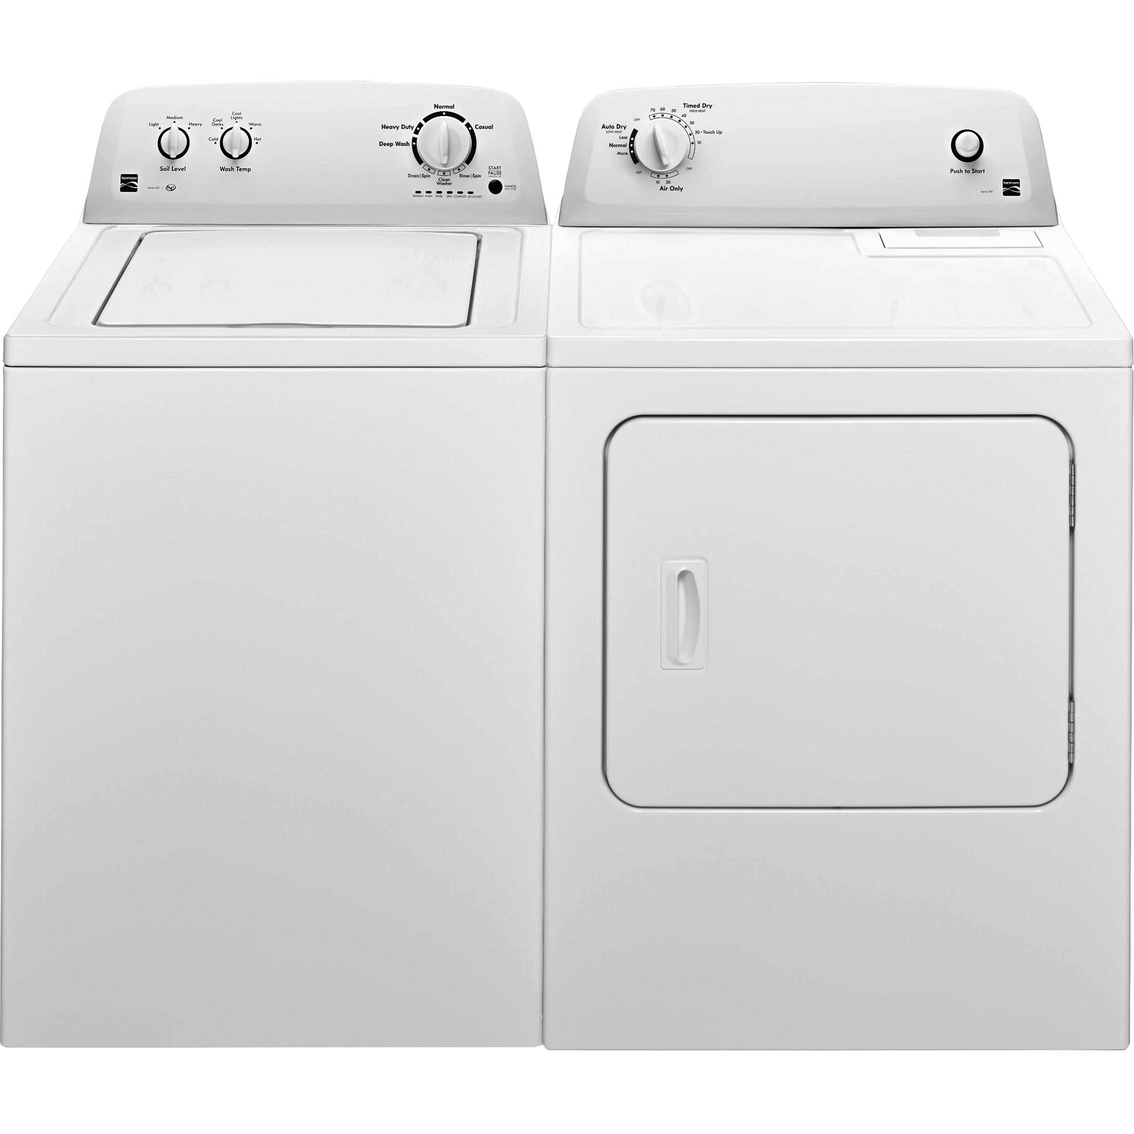 5 top rated top load washers - 3550